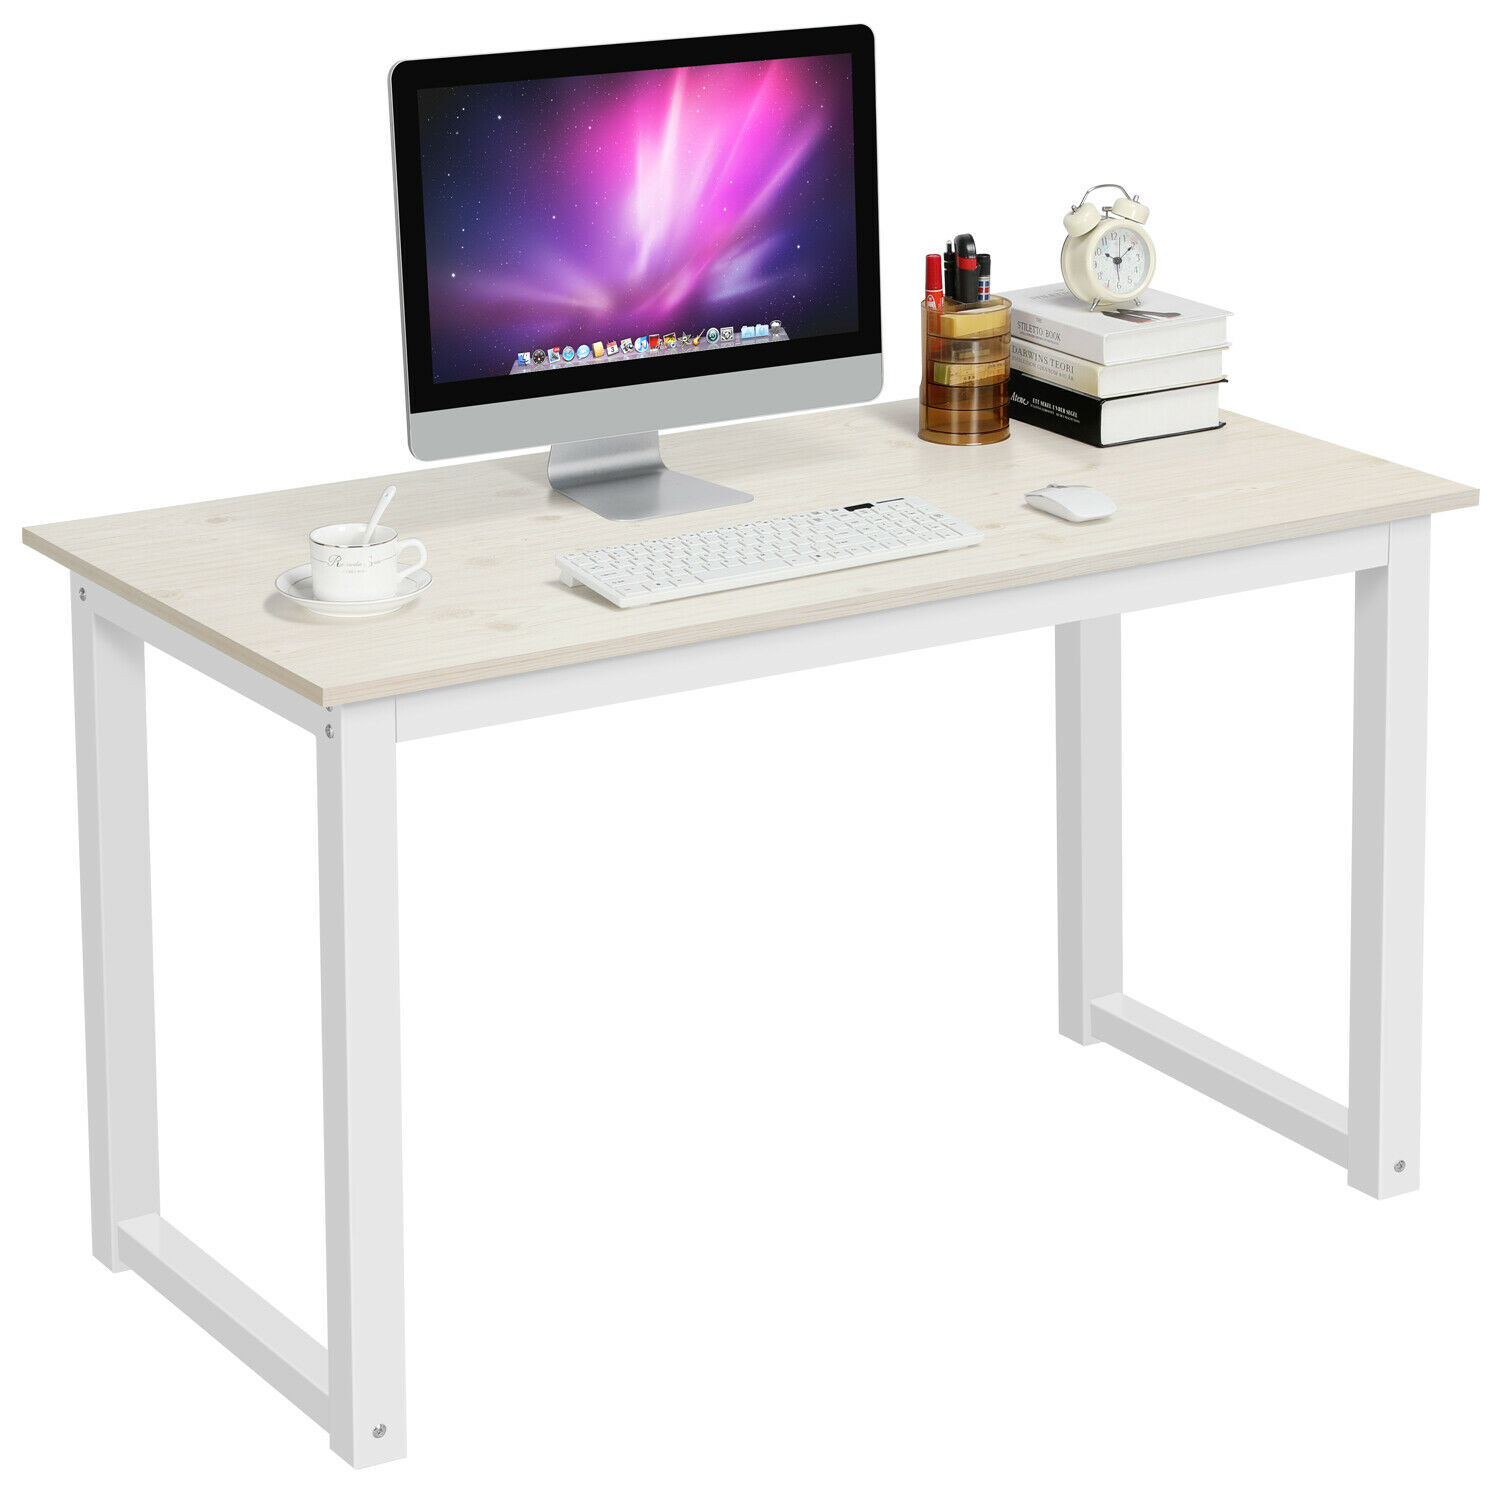 Writing Computer Desk Study Table Workstation with Cloth Bag Storage Laptop Desk Office Desk,Round Corner,for Home Office Dorm,47.2 x 19.7 x 29.9 inches